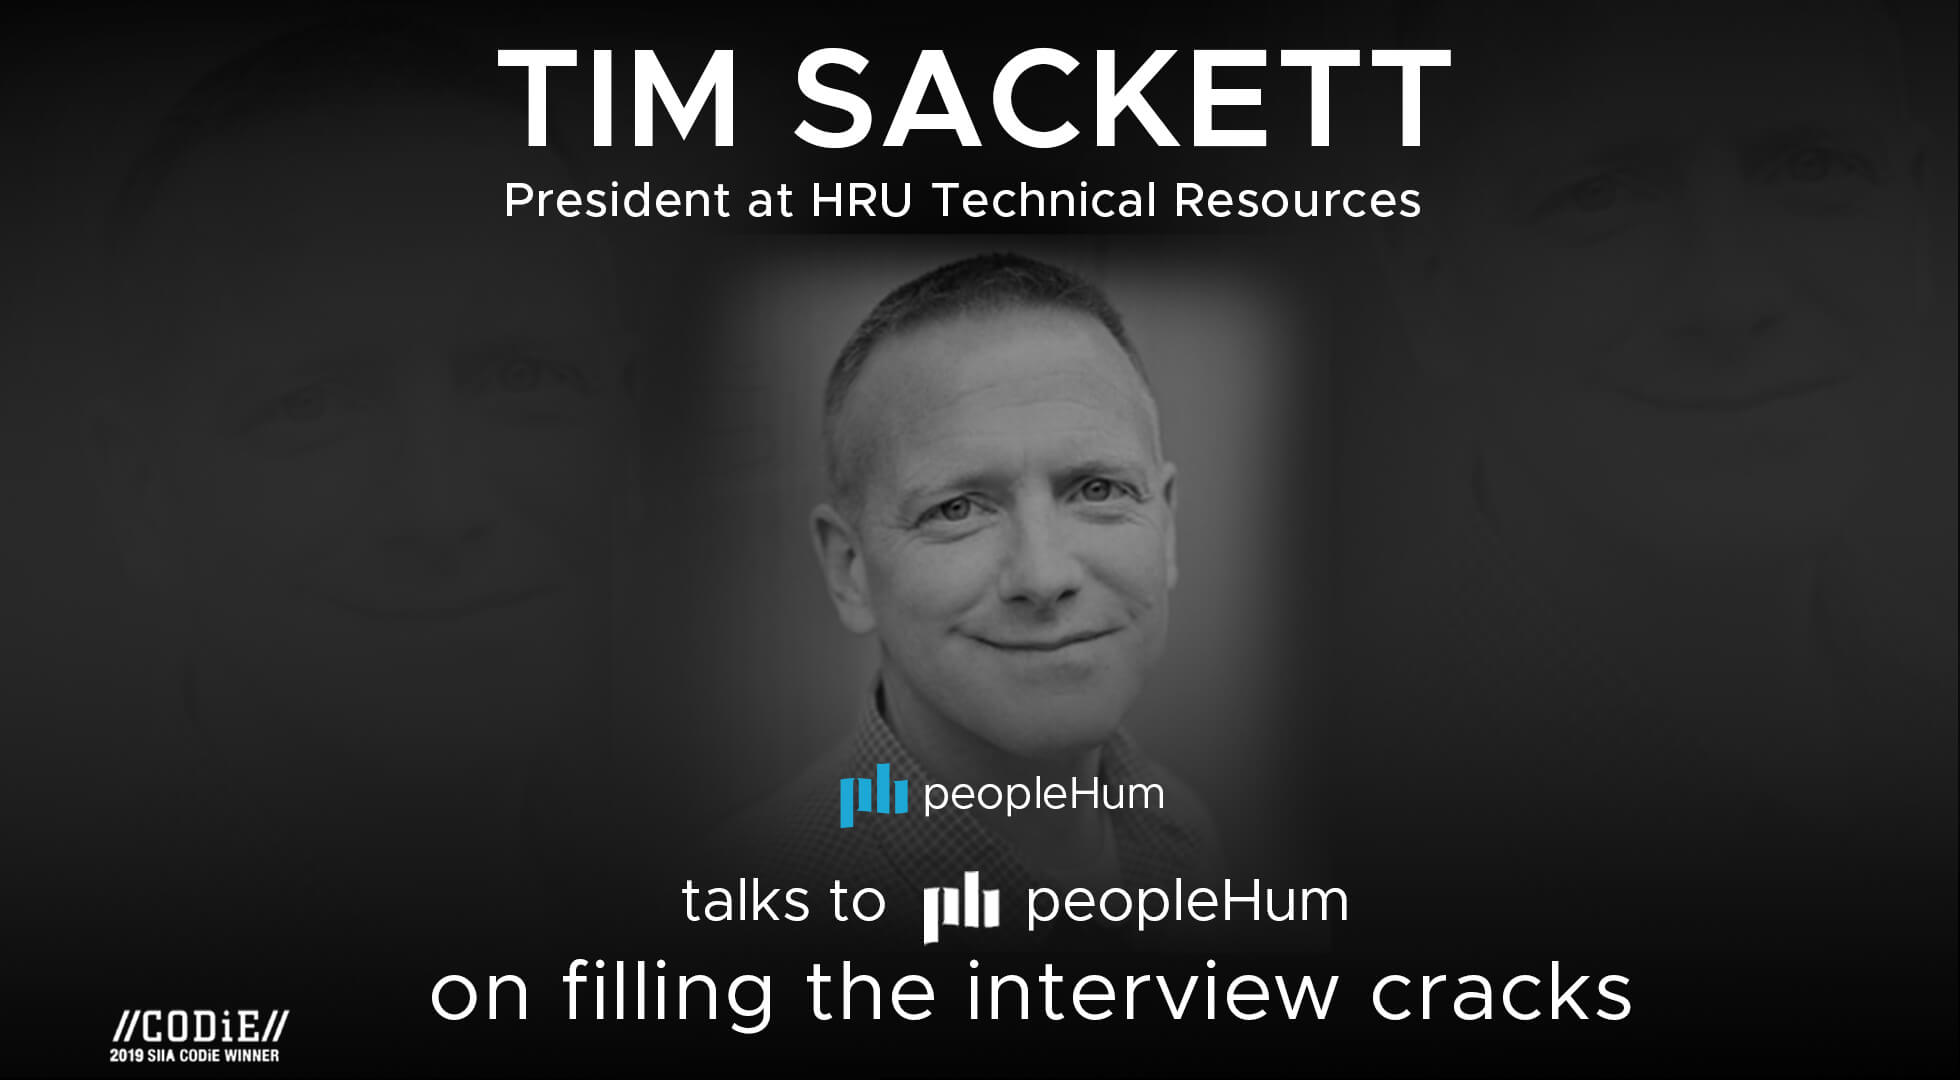 Saving candidates from slipping off the interview cracks - Tim Sackett [Interview]